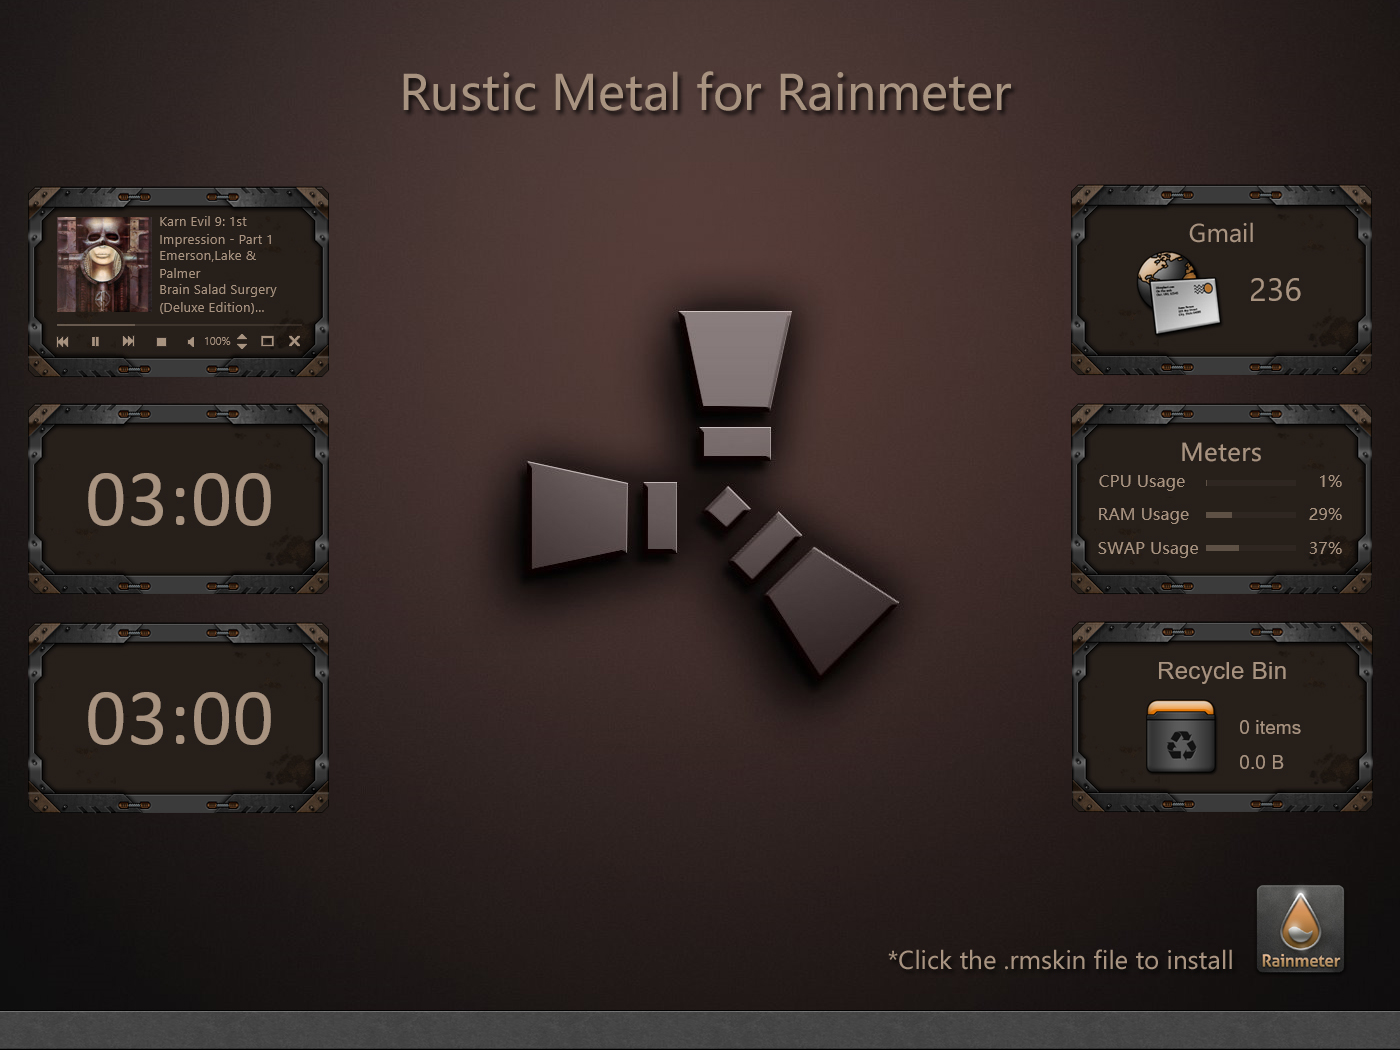 Rustic Metal Rainmeter